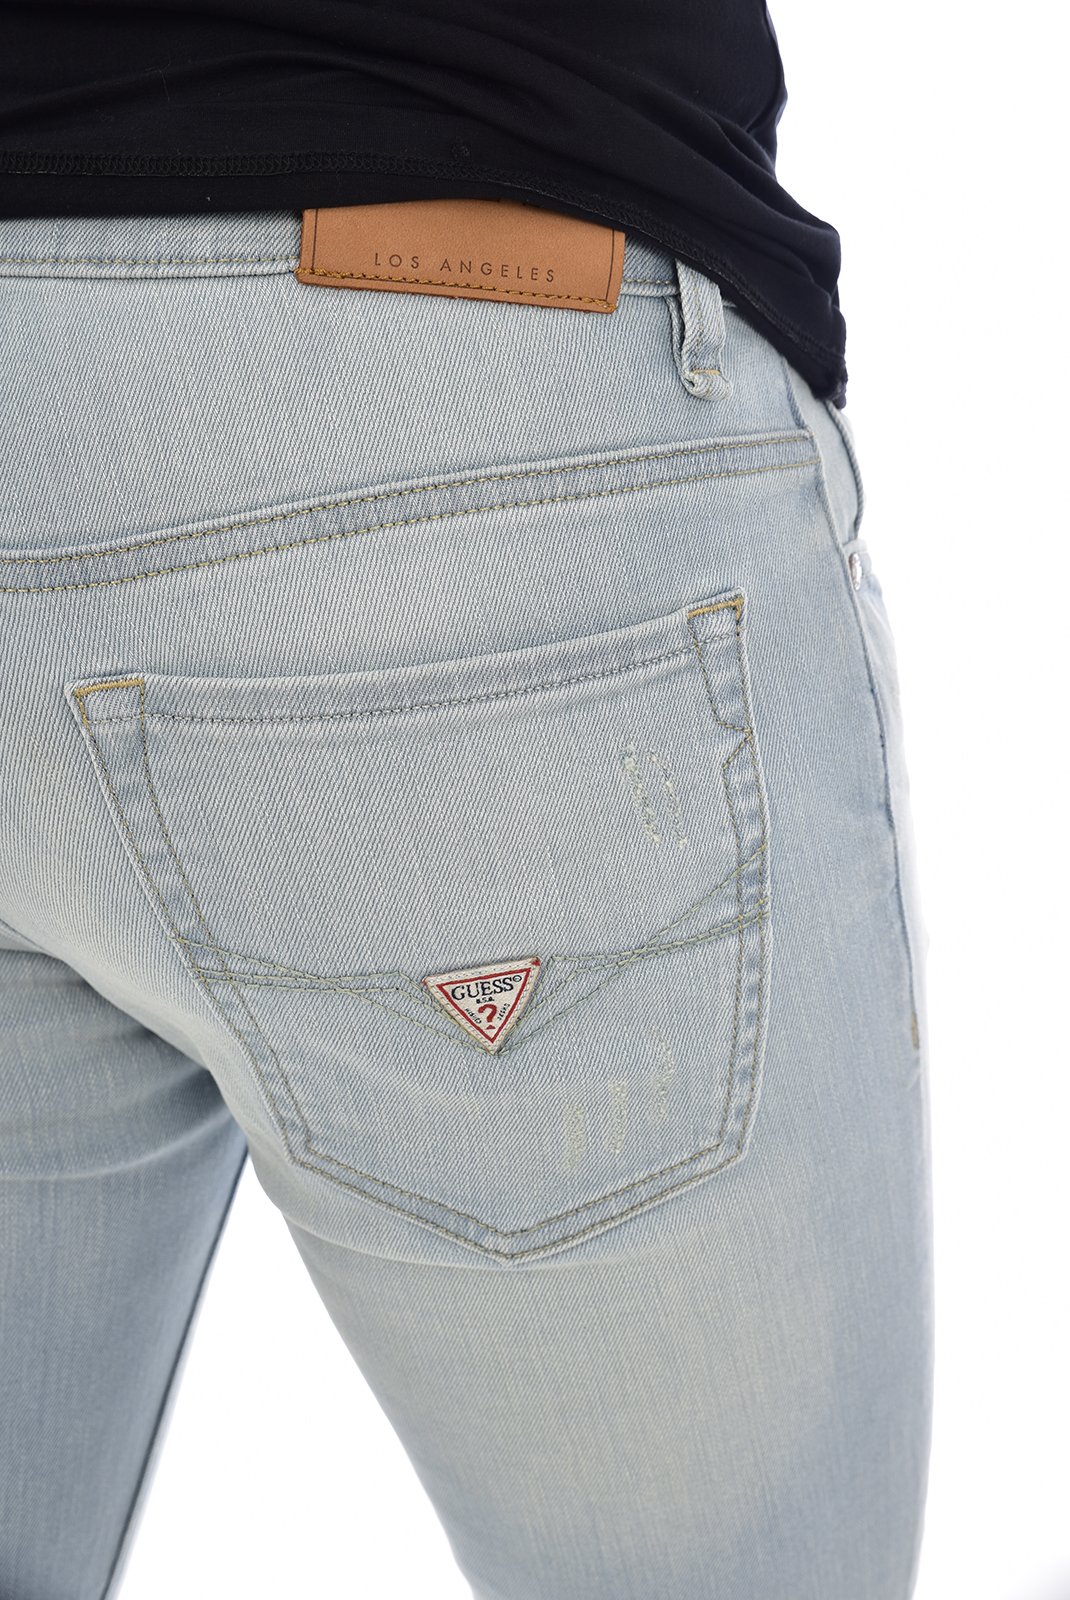 Guess Jeans Bleu Skinny Taille Basse M92an2 Angels